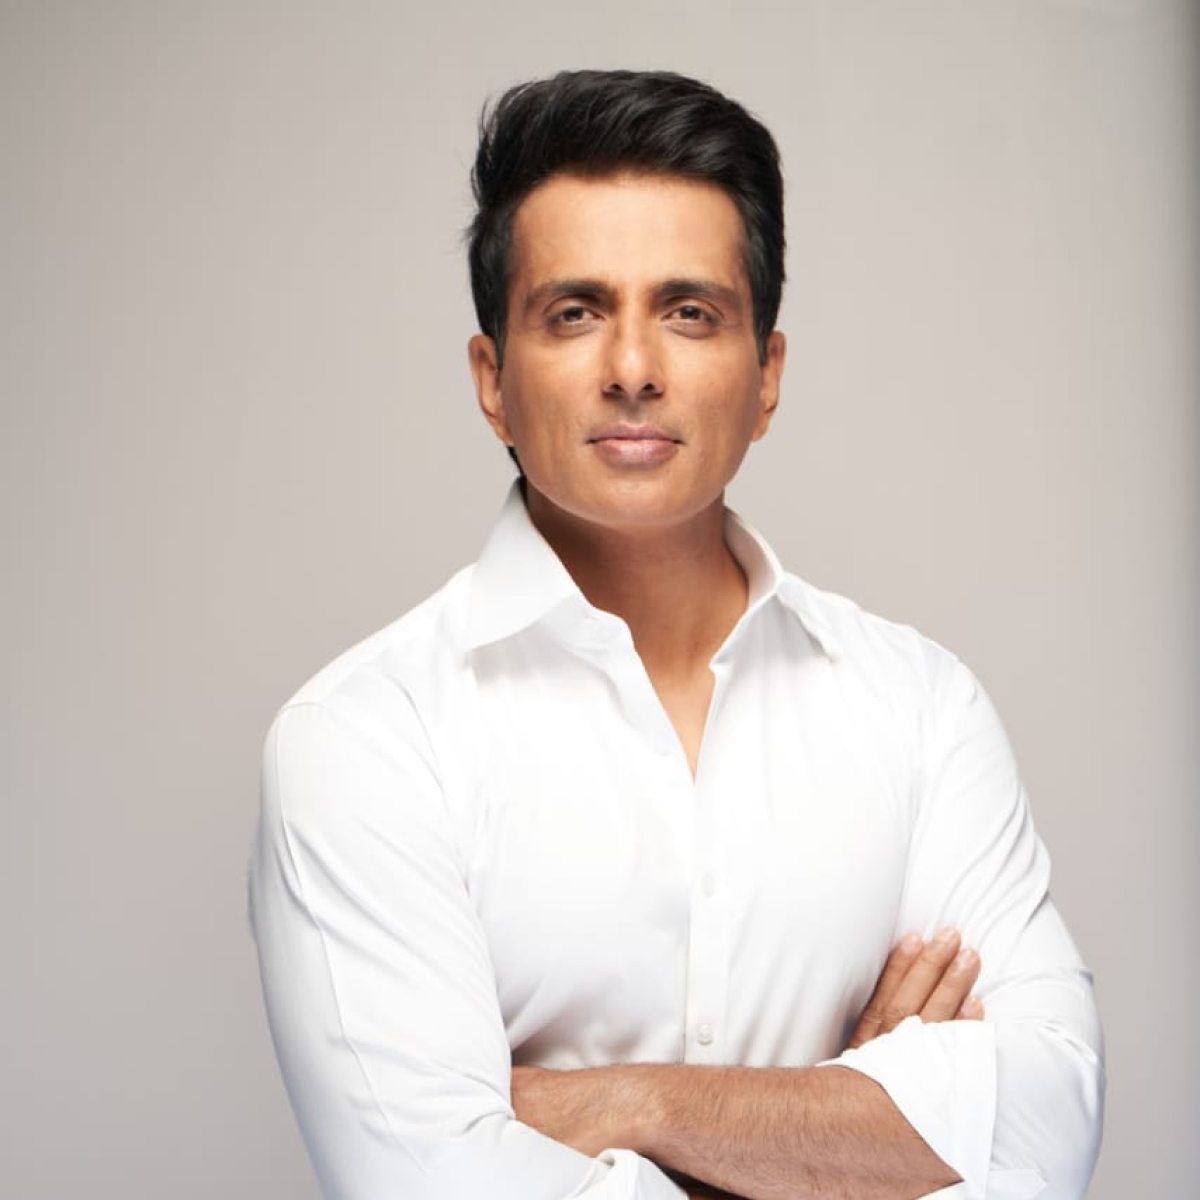 'Oxygen aapka haq hai': Sonu Sood promises to send cylinder for COVID-19 positive patient in 10 minutes